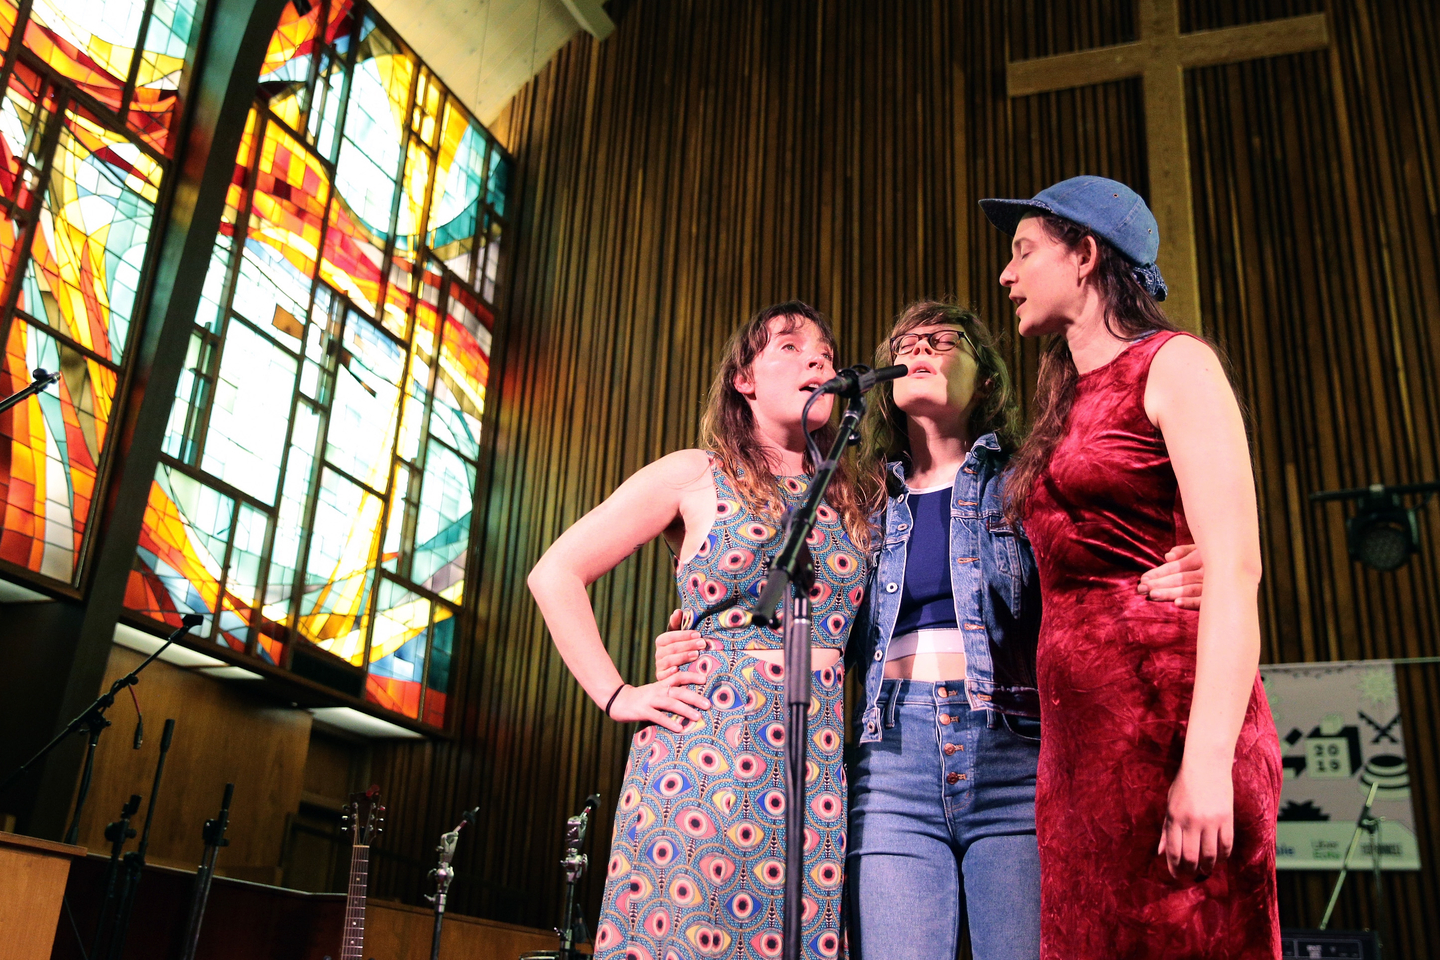 (L-R) Amelia Meath, Alexandra Sauser-Monnig, and Molly Erin Sarle of Mountain Man perform onstage at NPR Tiny Desk Concert at Central Presbyterian Church.